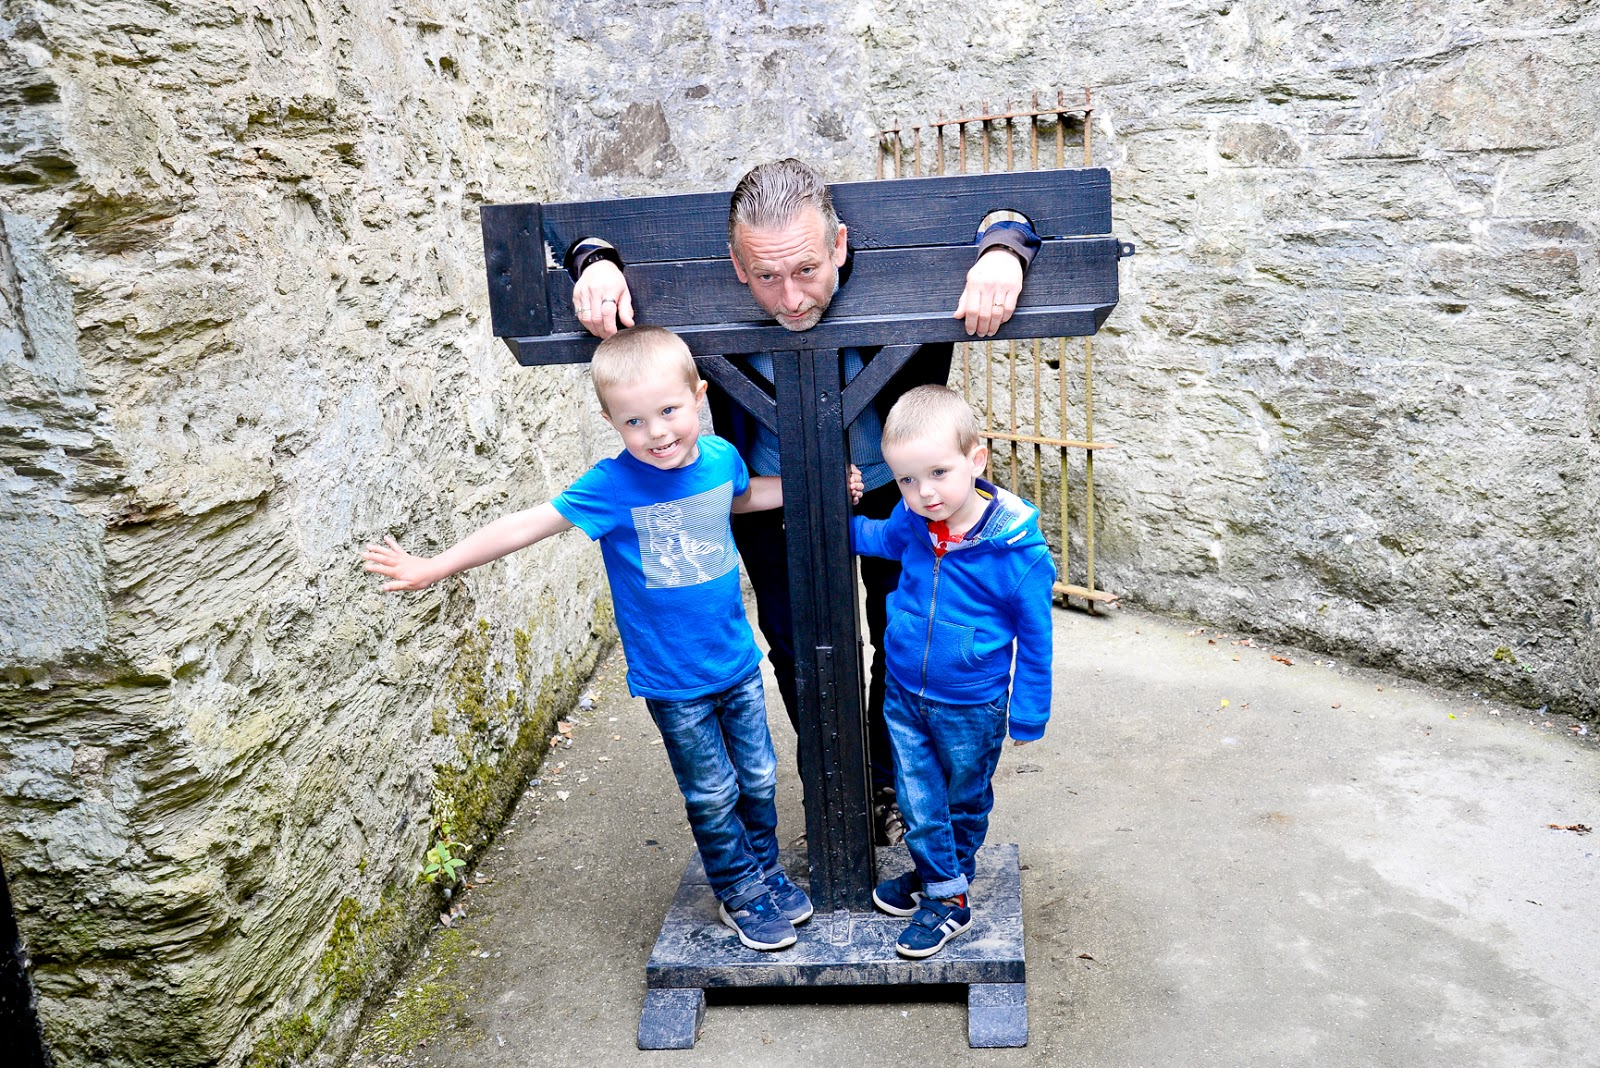 bodmin jail, uk family holidays with kids, cornwall days out with the kids, family travel uk,